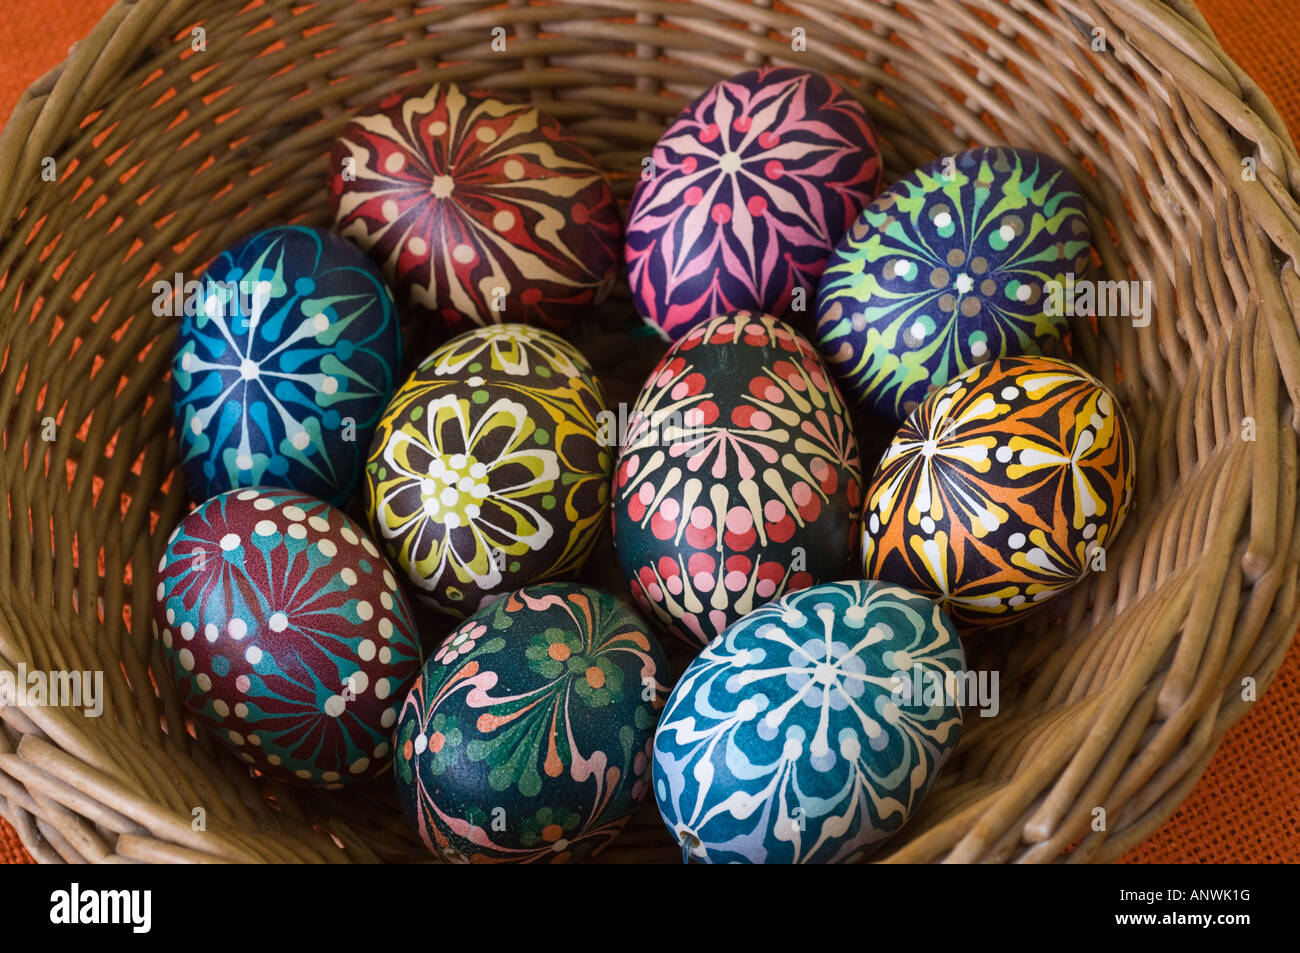 Collection Of Easter Eggs Decorated By Krystyna Majewska From Gdansk